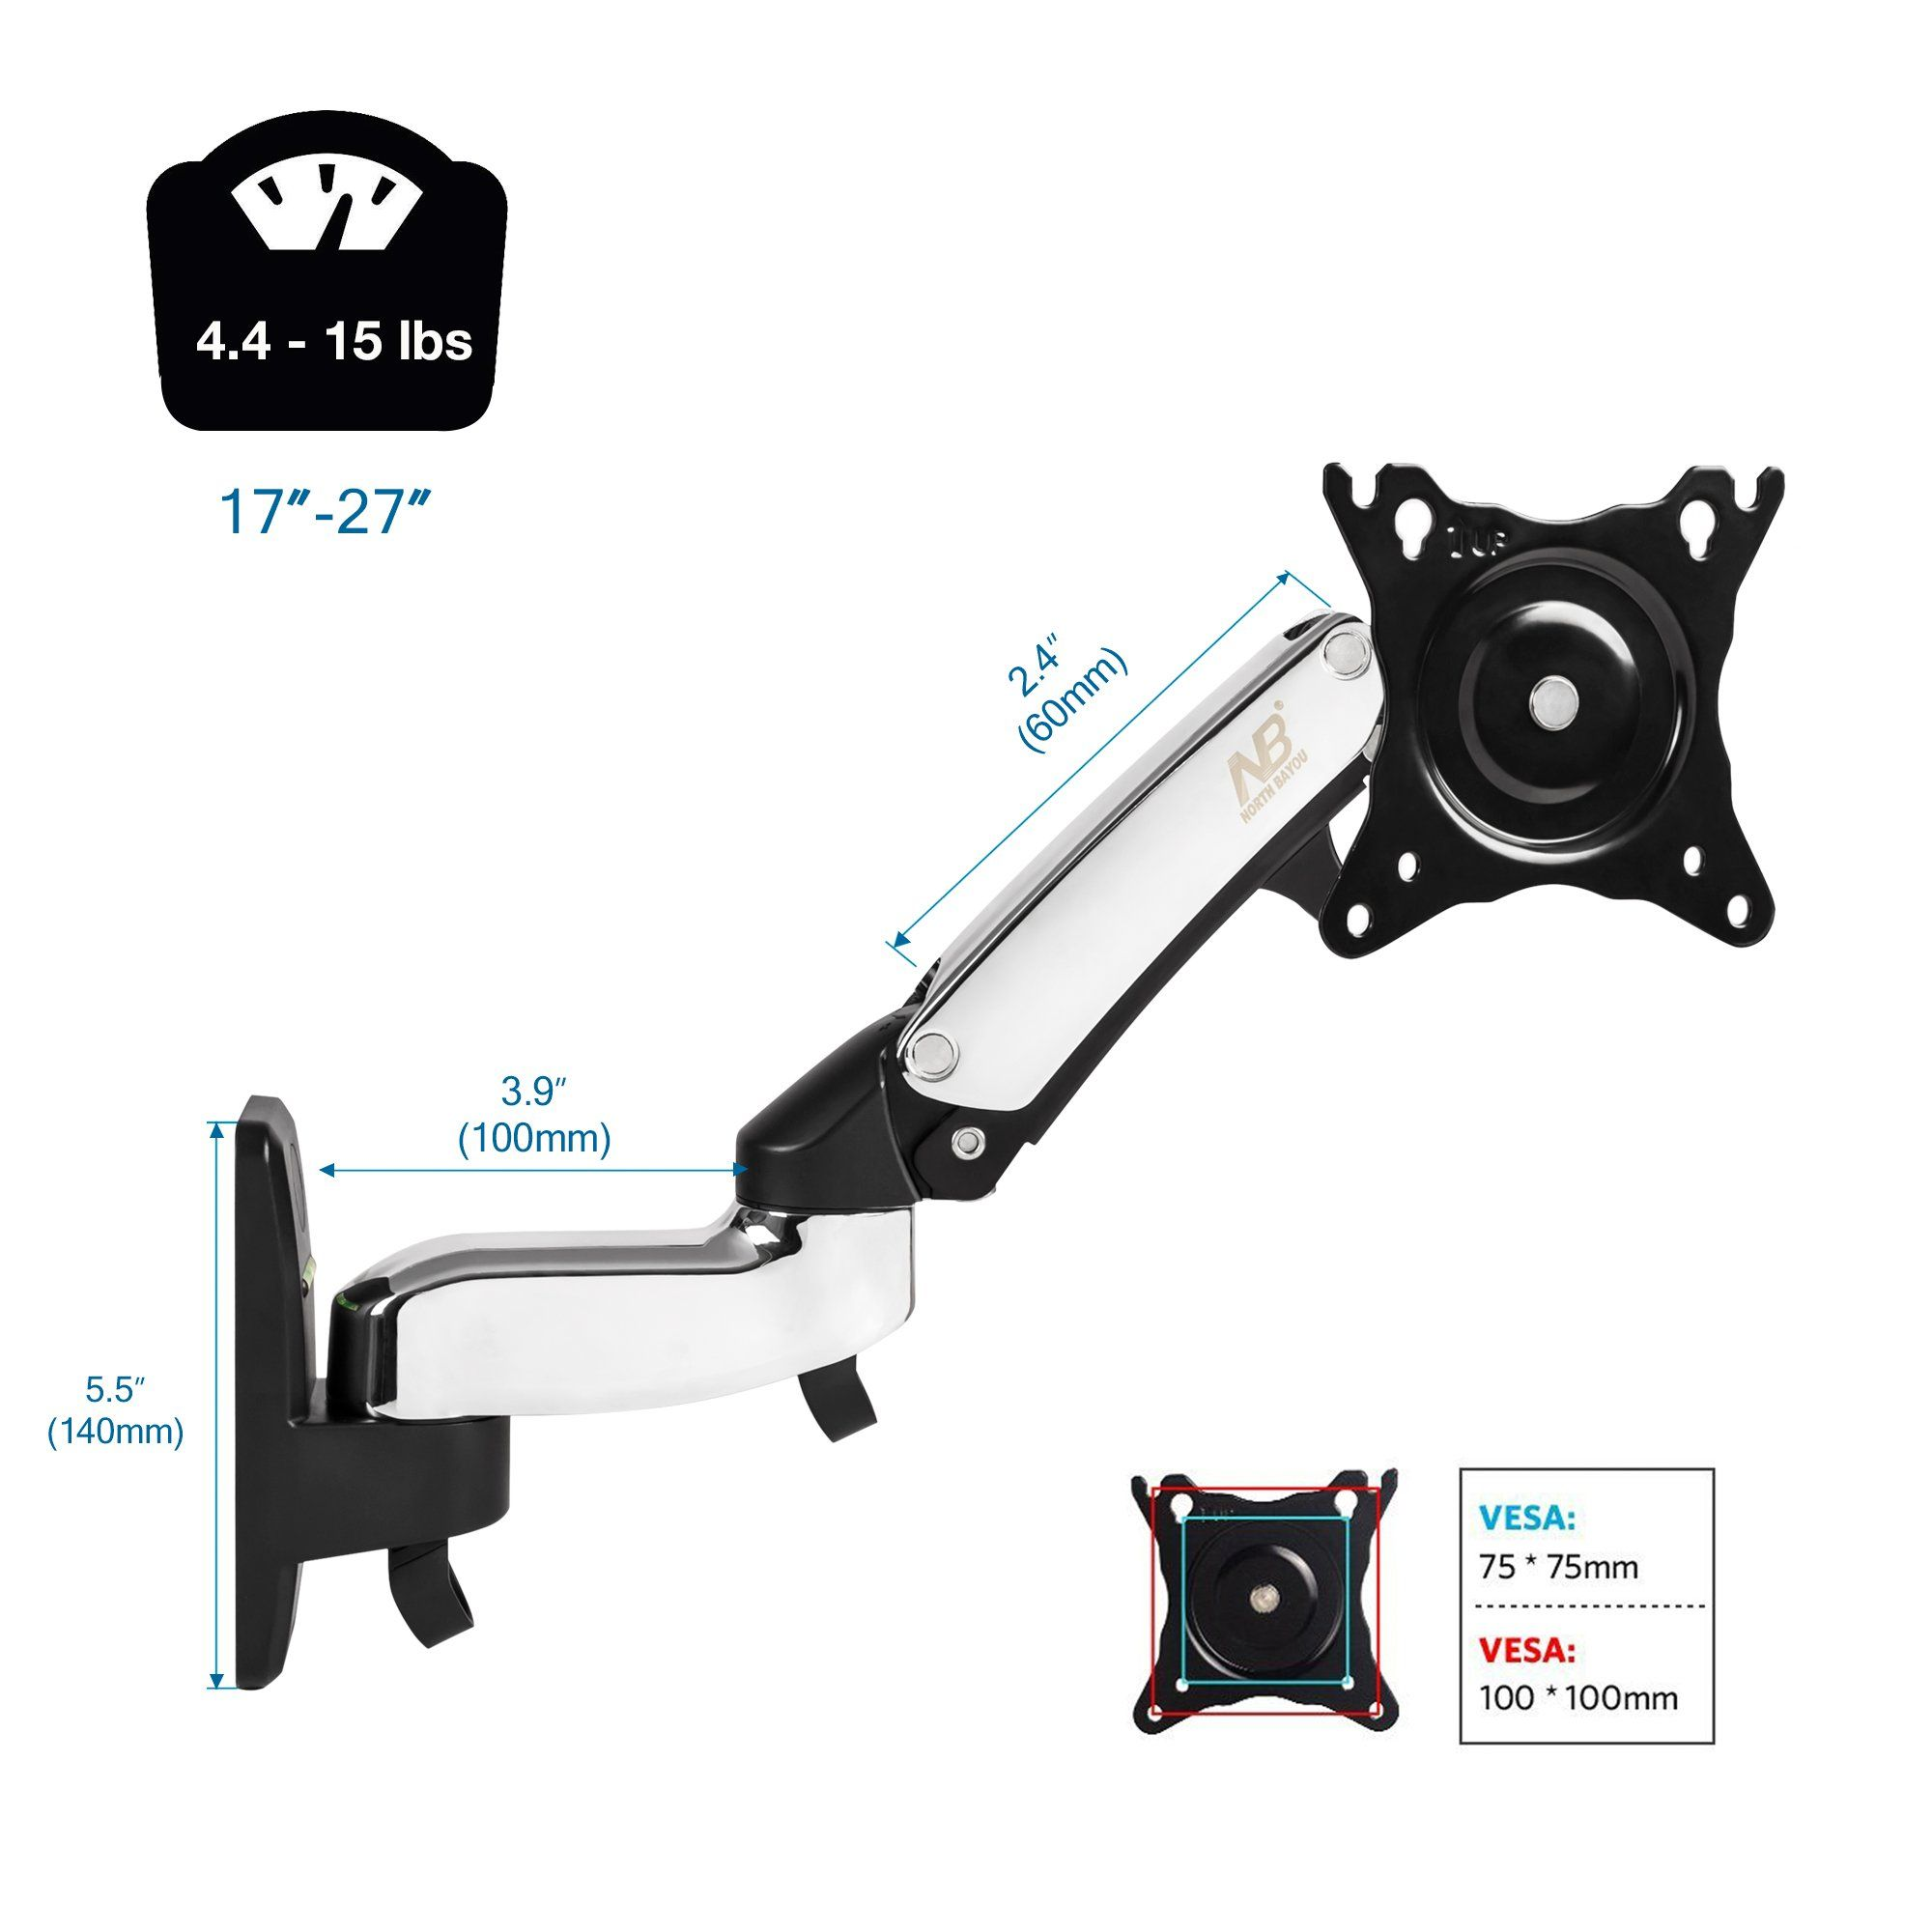 North Bayou Tv Monitor Wall Mount Bracket Full Motion Articulating Swivel For 17 27 Inch Display Monitor W Chrome Plating Wall Mount Bracket Kitchen Wall Decor